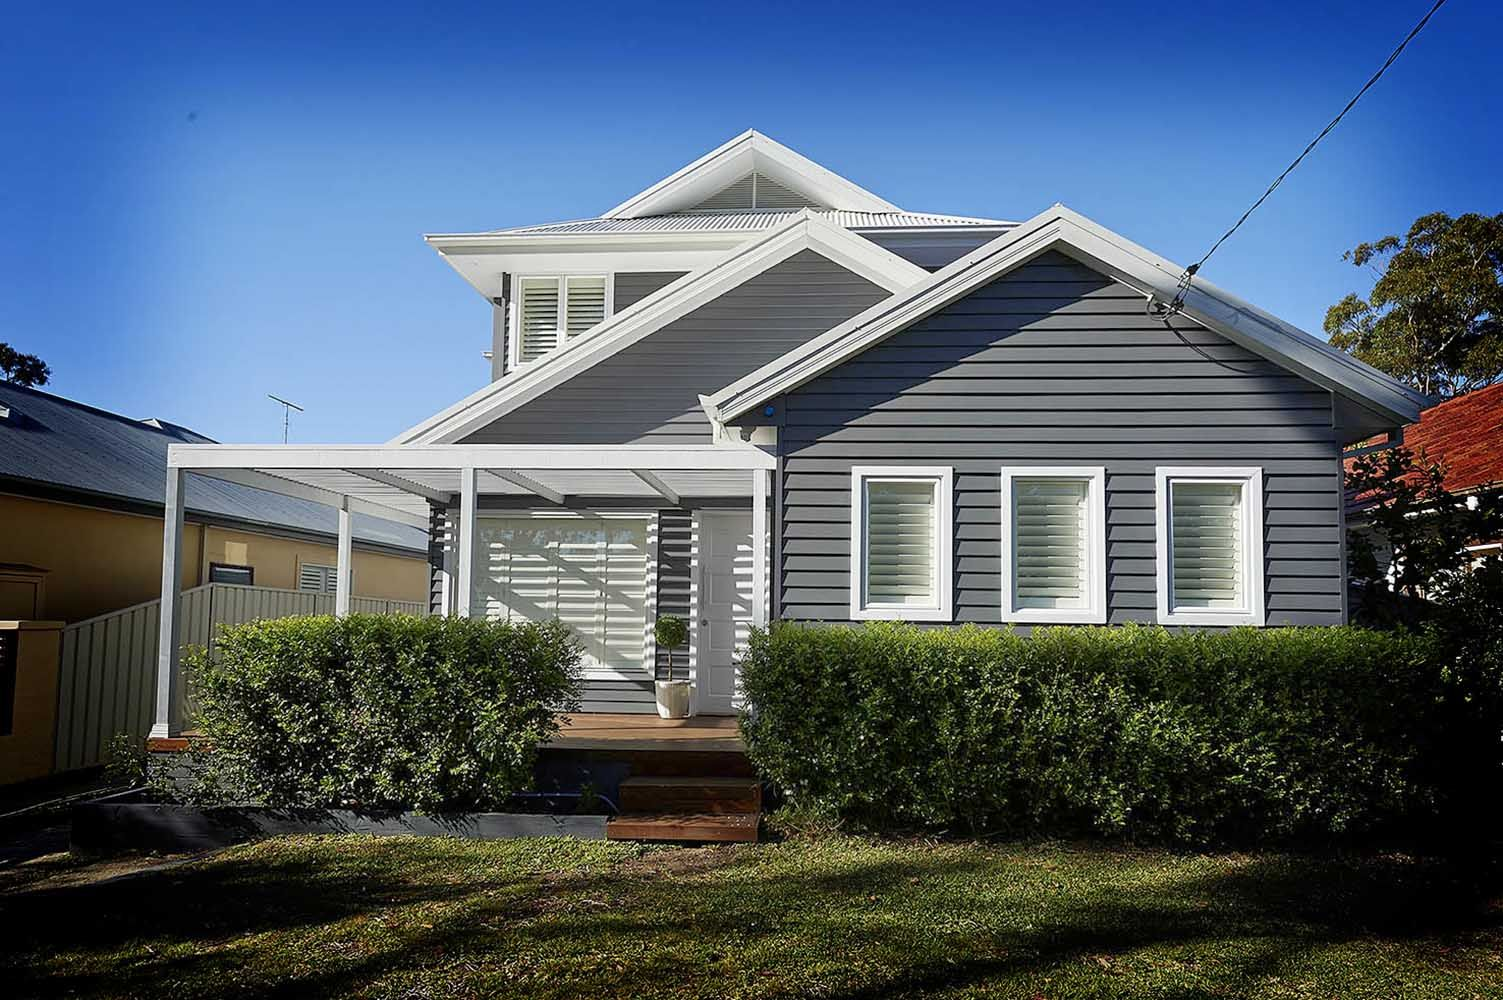 Weatherboard sycon linea jameshardie new house facade for Weatherboard house designs